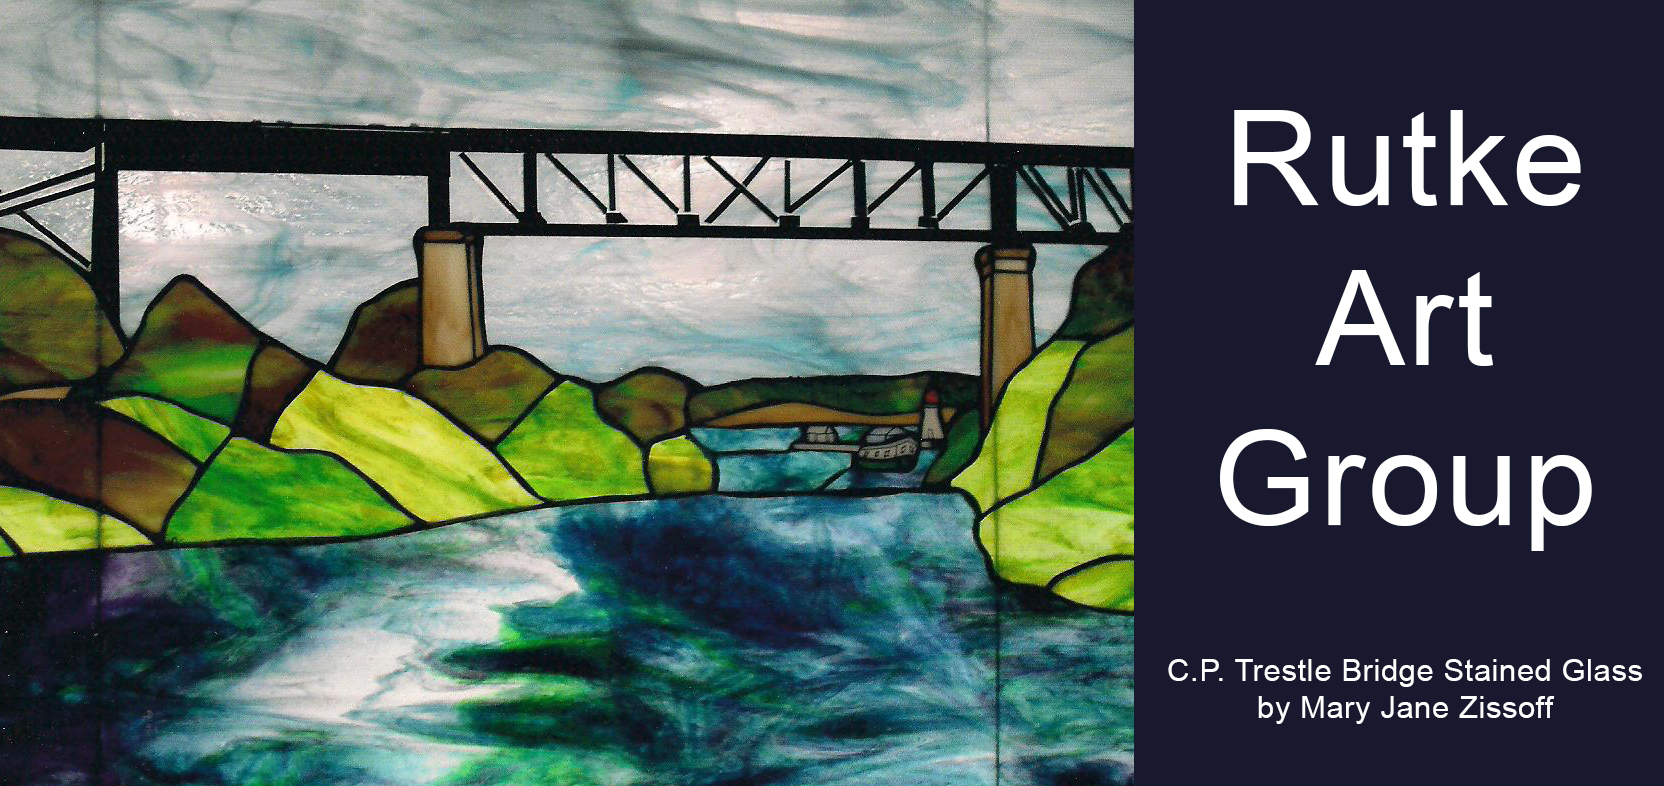 Rutke Art Group stained glass Trestle Bridge by Mary Jane Zissoff